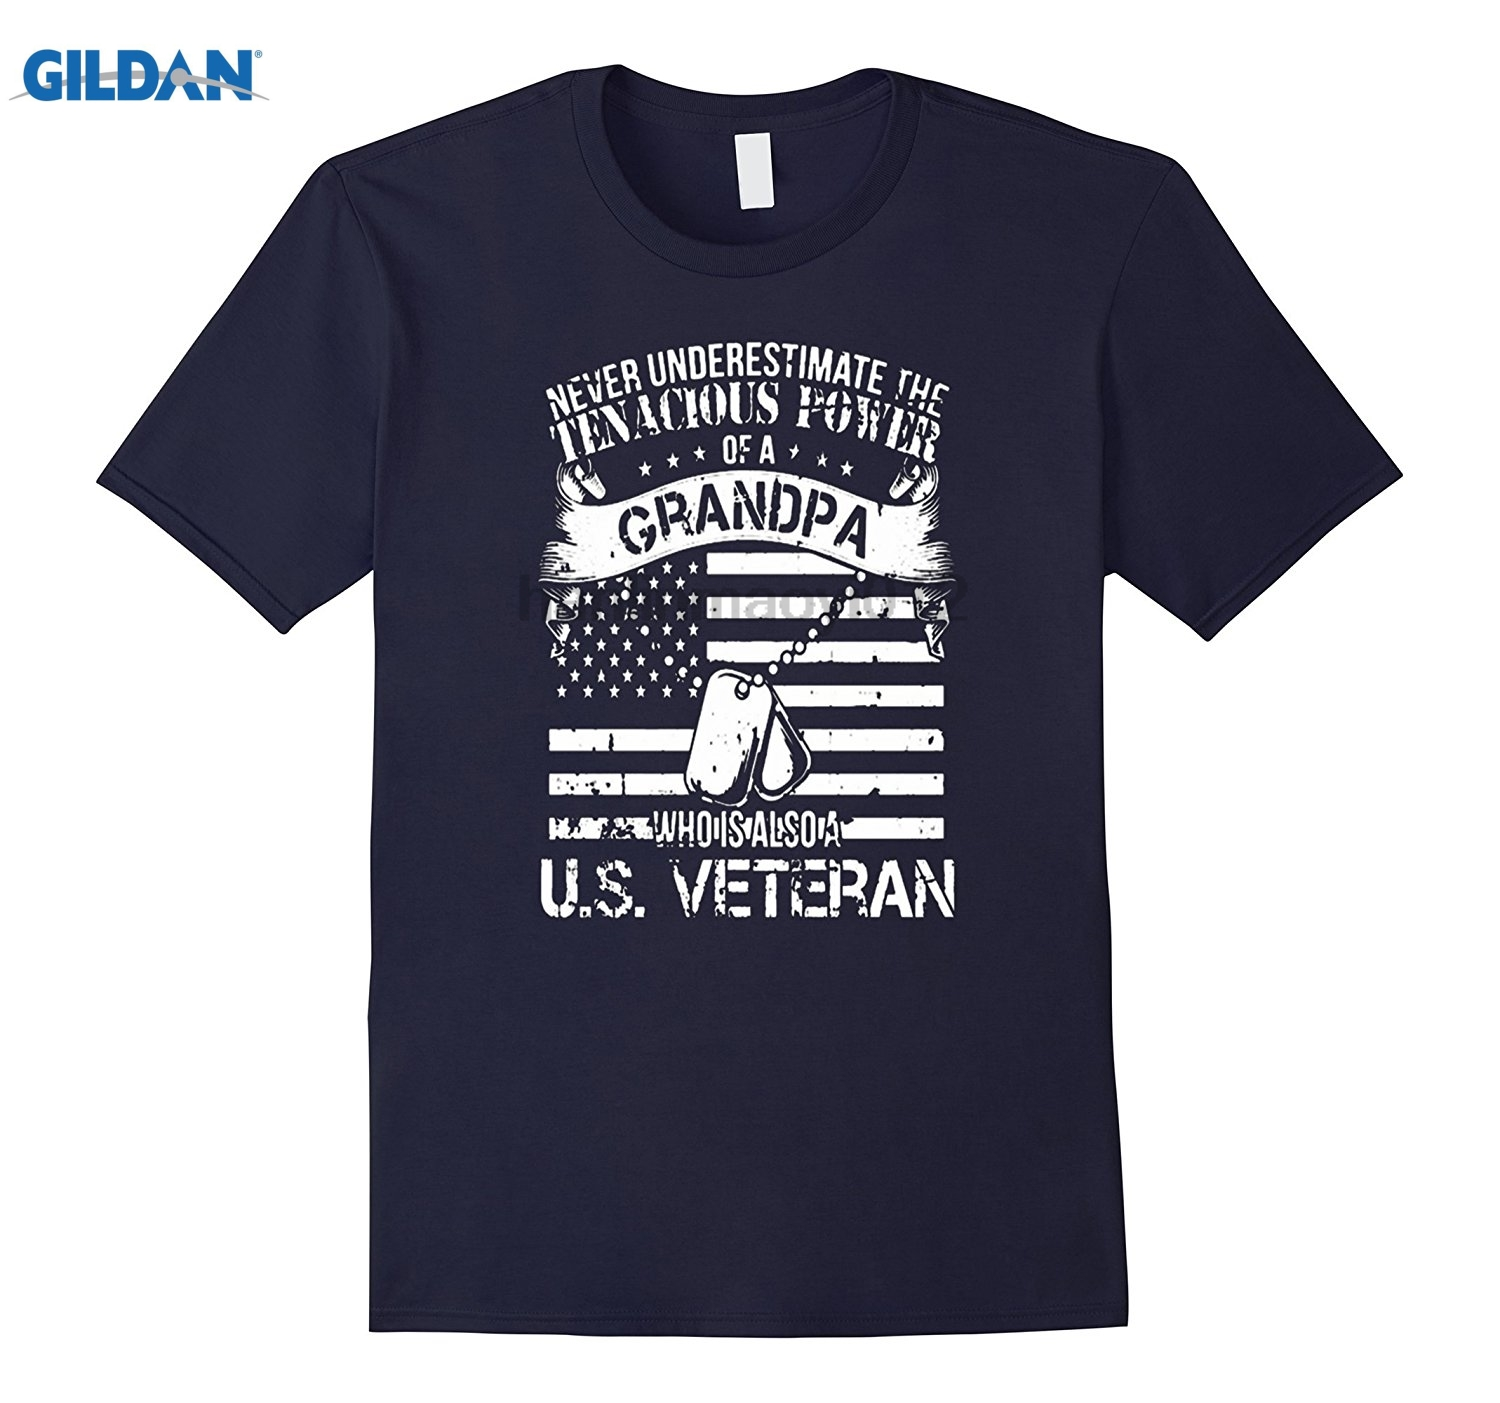 GILDAN Memorial Day Shirt- Tenacious Power Grandpa U.S veteran day Mothers Day Ms. T-shirt glasses Womens T-shirt